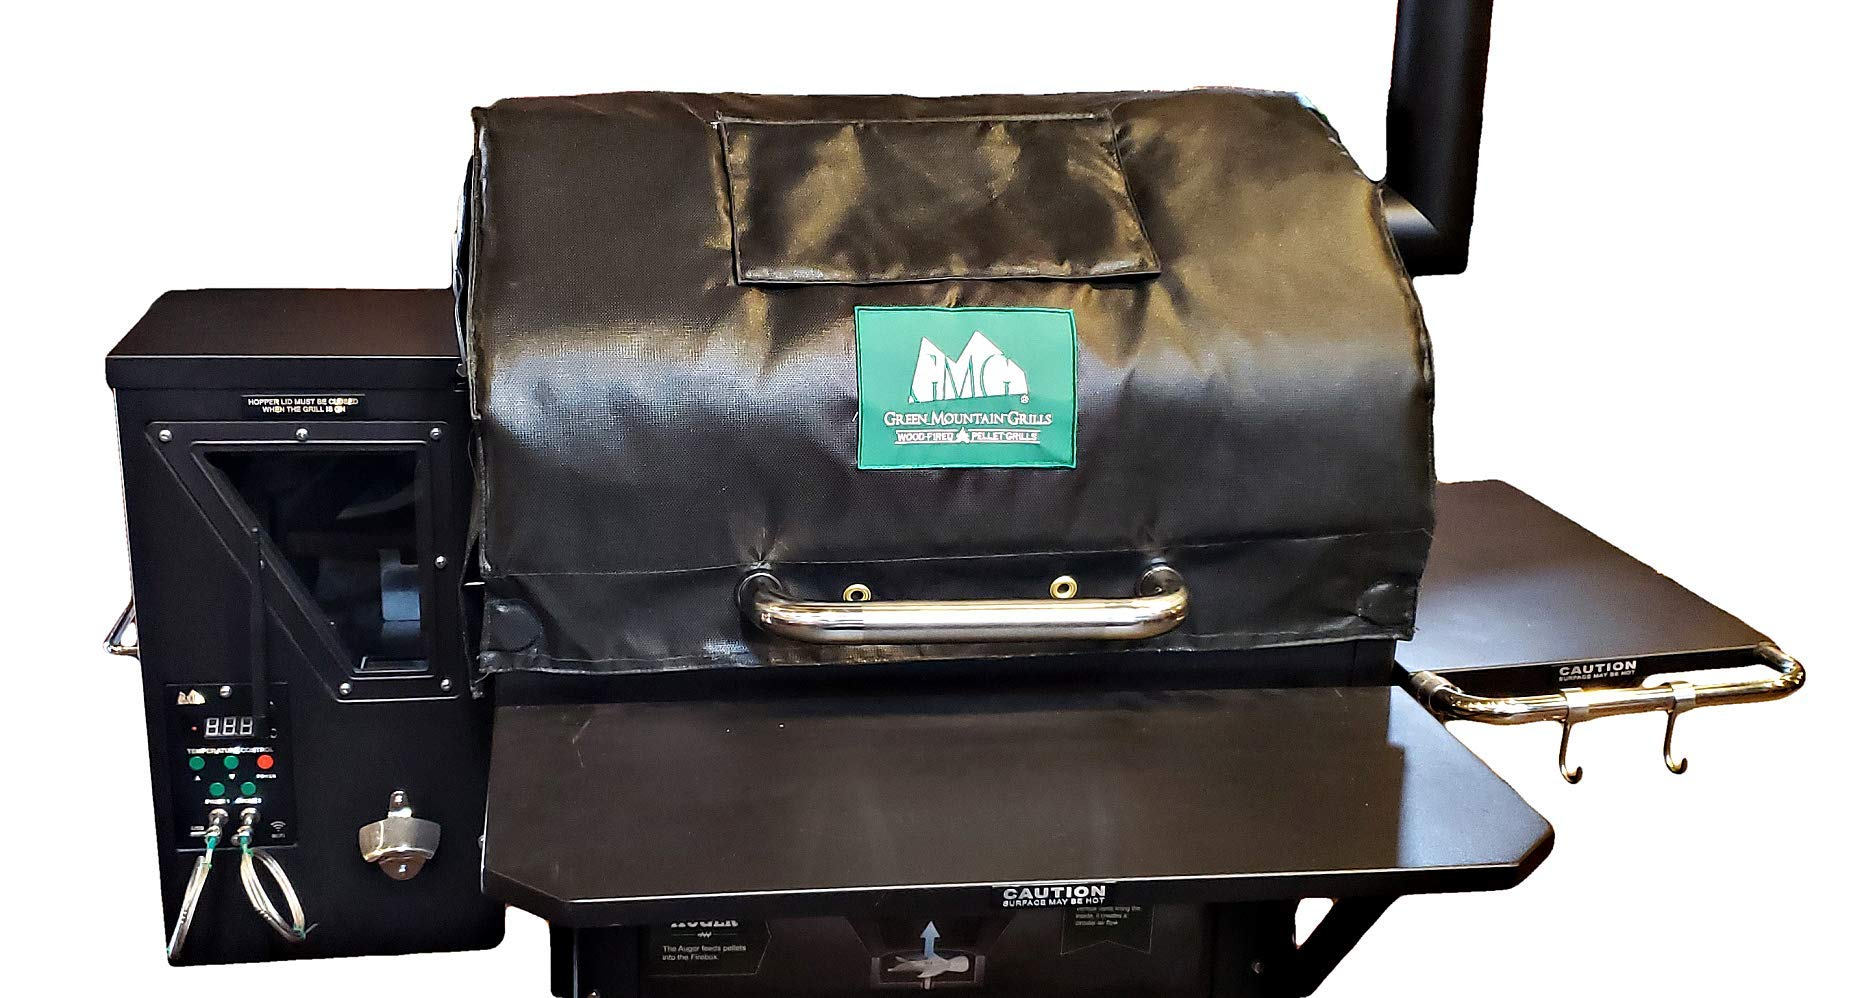 Green Mountain Grills Thermal Blanket for Daniel Boone Prime 12v Pellet Grill GMG-6031 by Green Mountain Grills